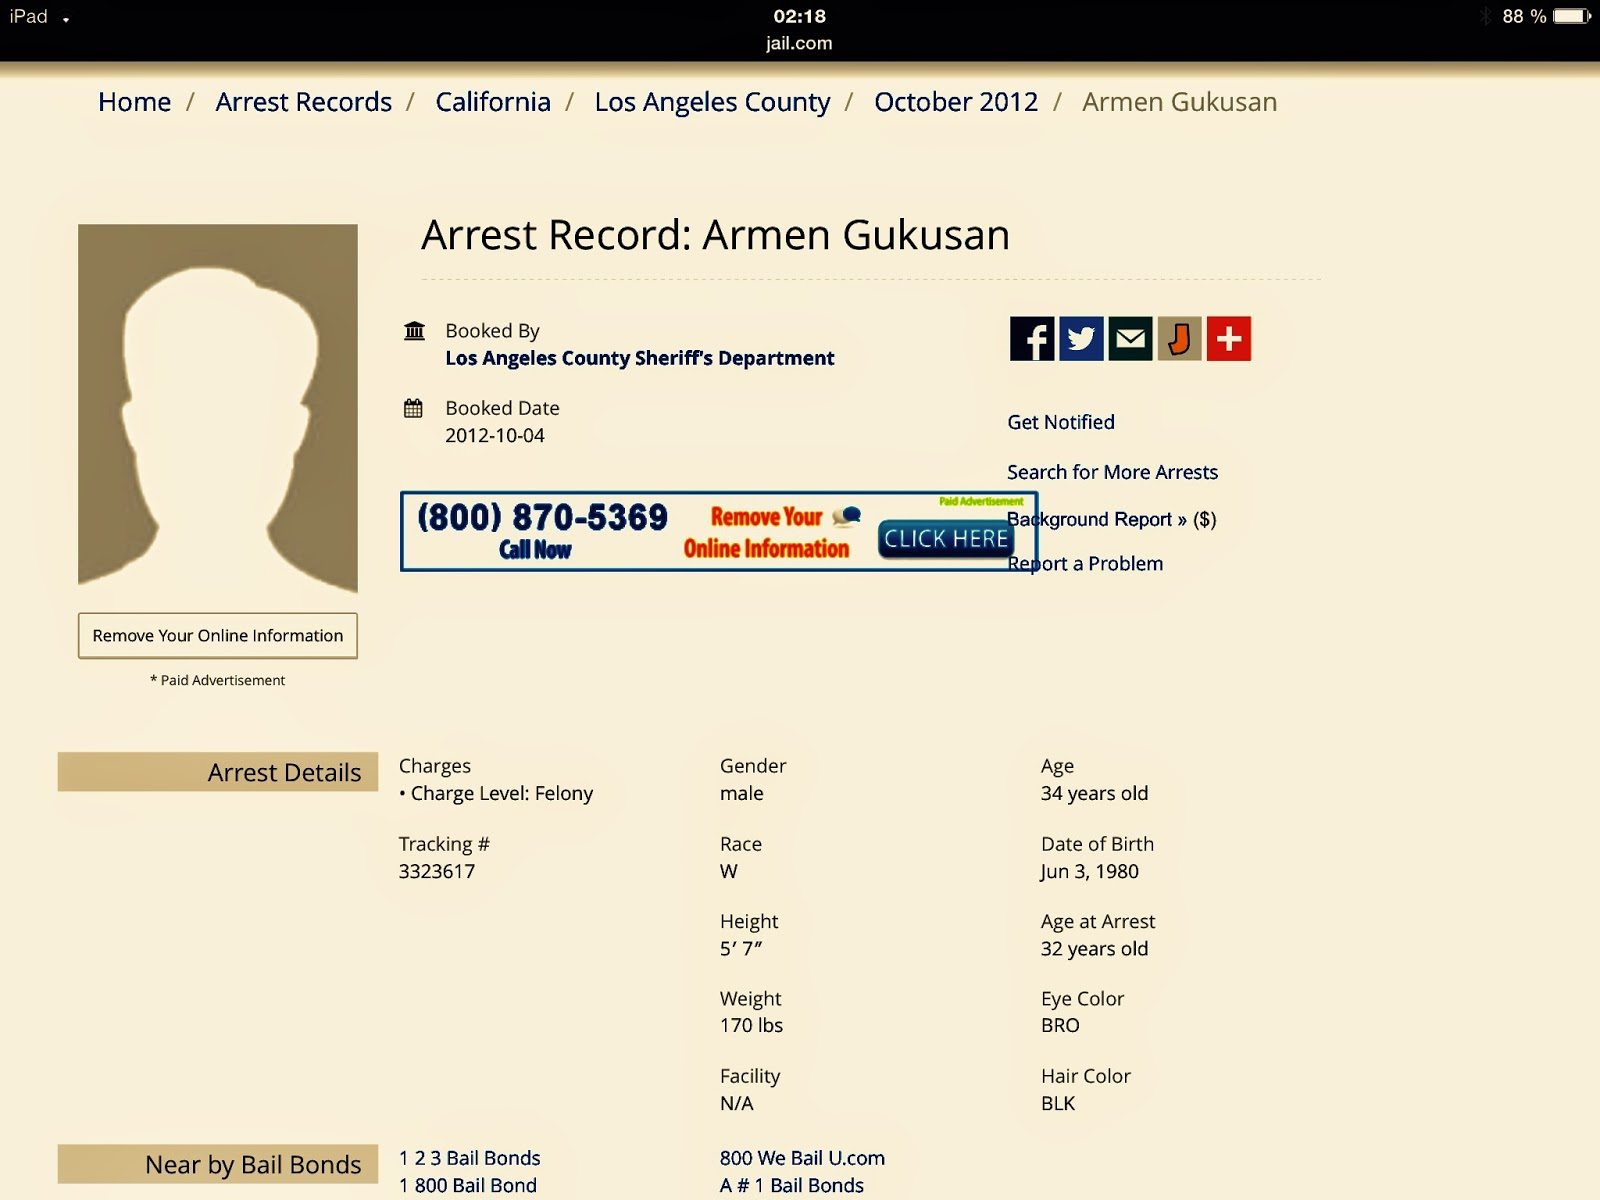 Arrest-Record-Armen-Gukusan-Armin-Gukusan-California-County